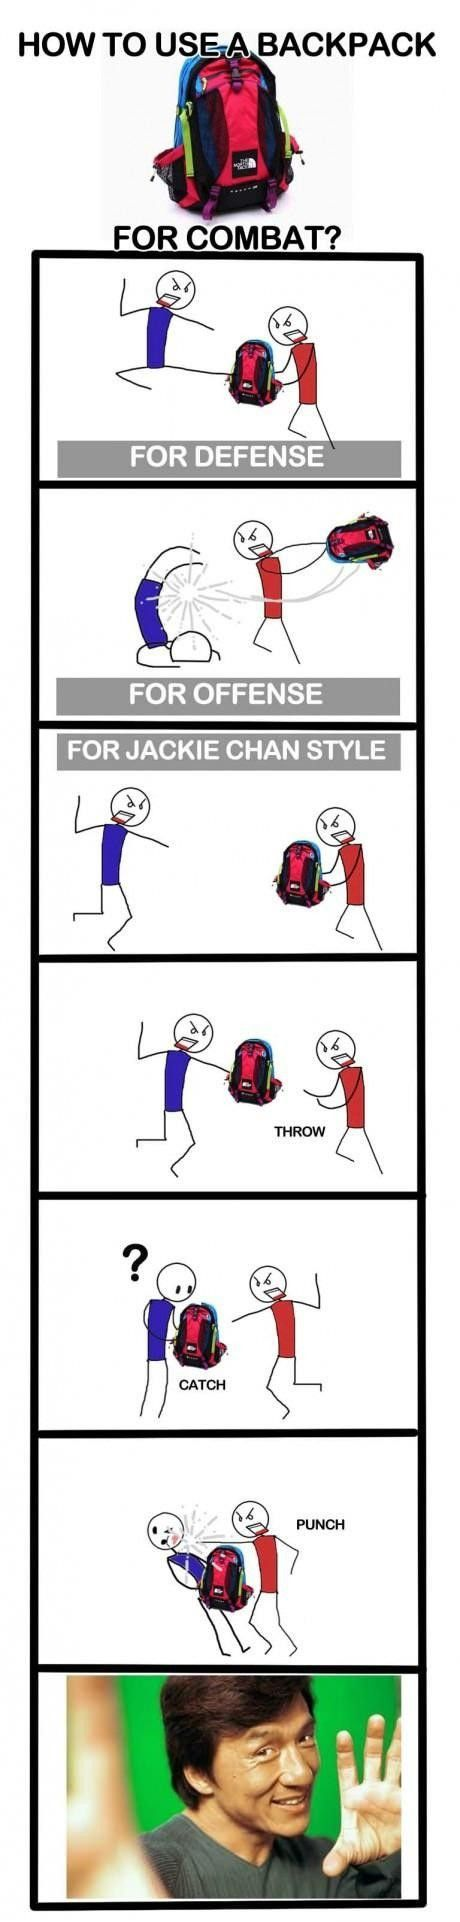 How To Use Your Backpack For Self Defense haha